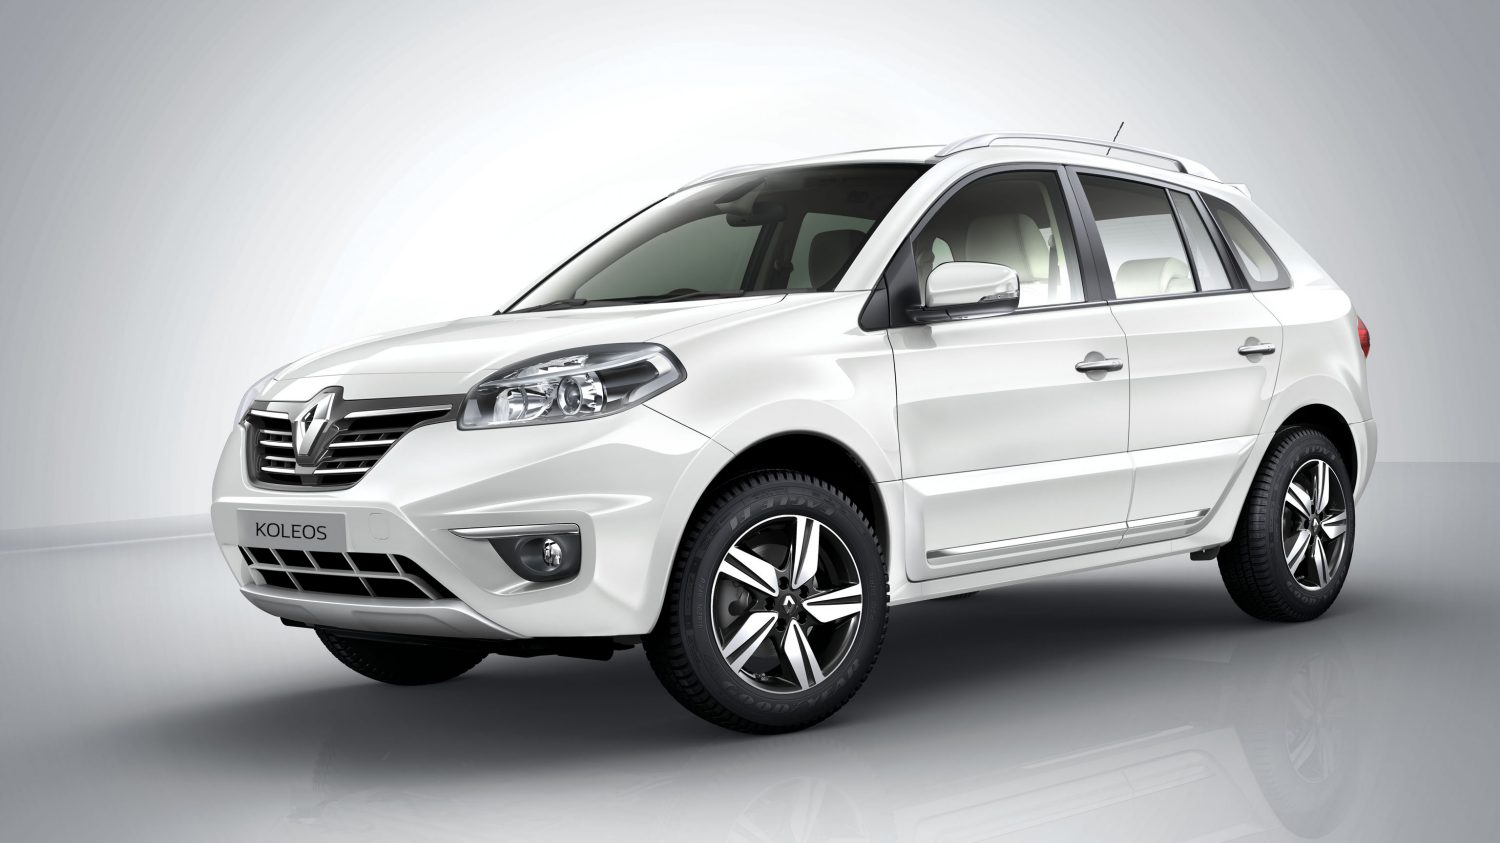 2017 renault koleos to be unveiled in beijing suv news and analysis. Black Bedroom Furniture Sets. Home Design Ideas